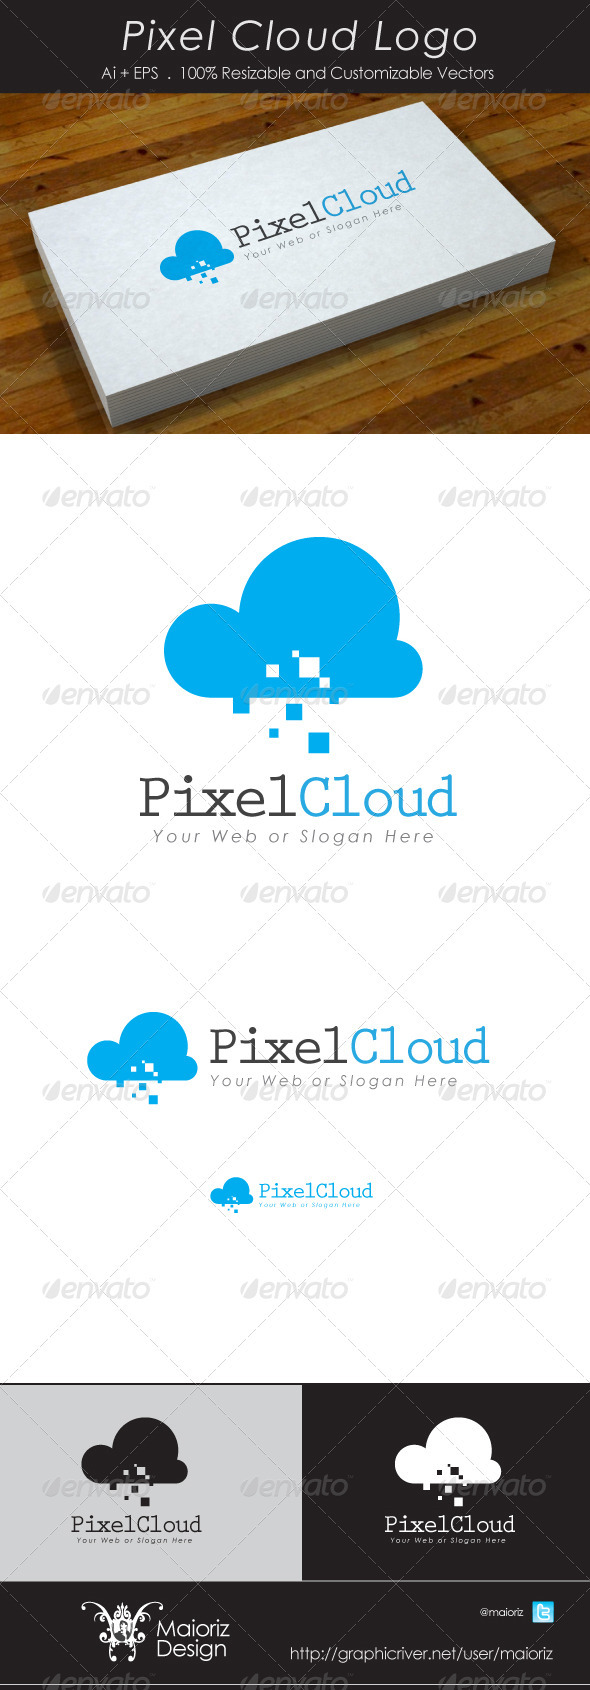 Pixel Cloud Logotype - Vector Abstract